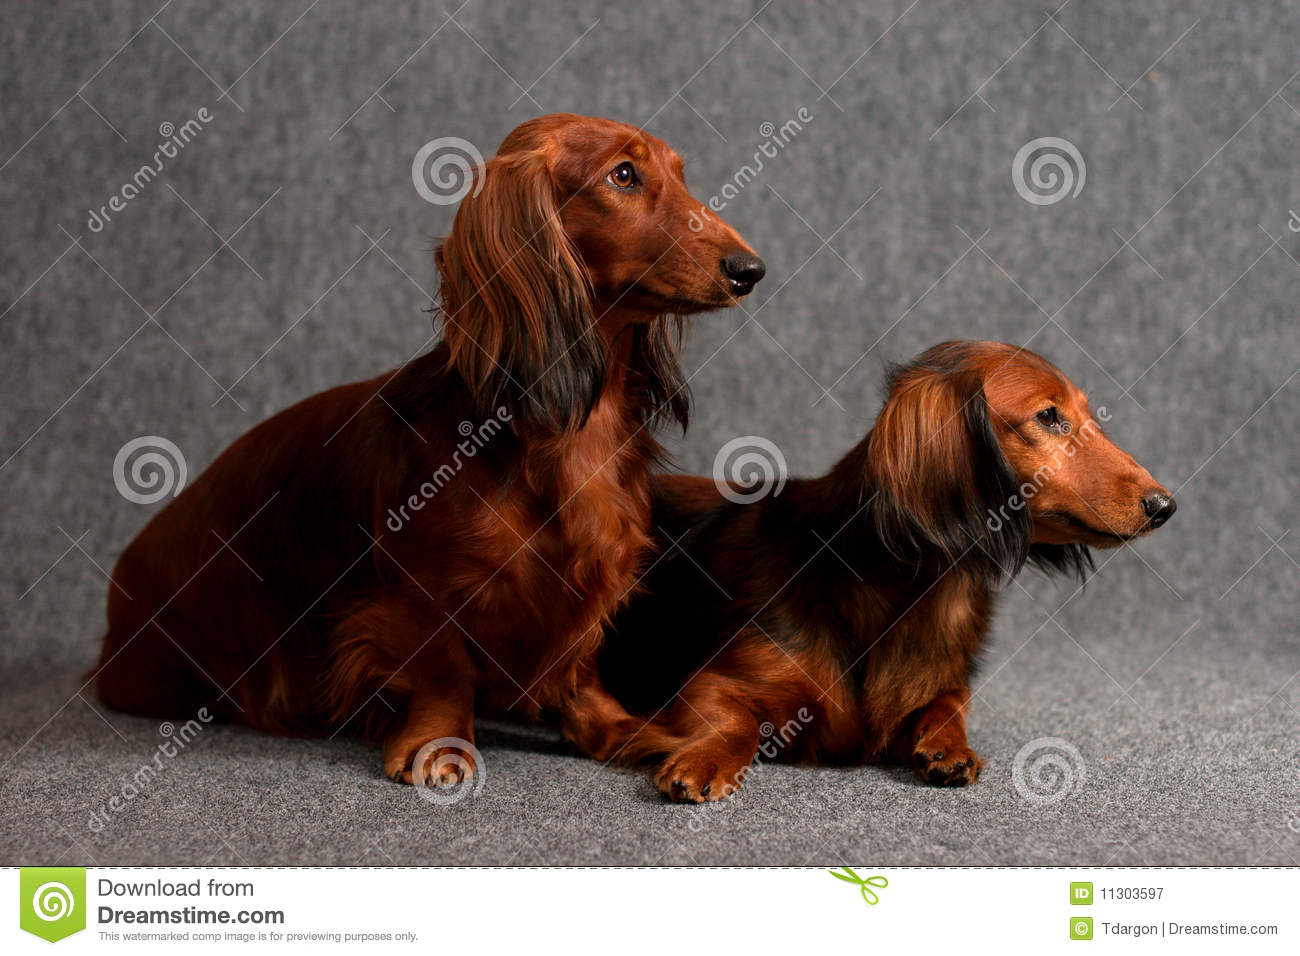 Doxie lain